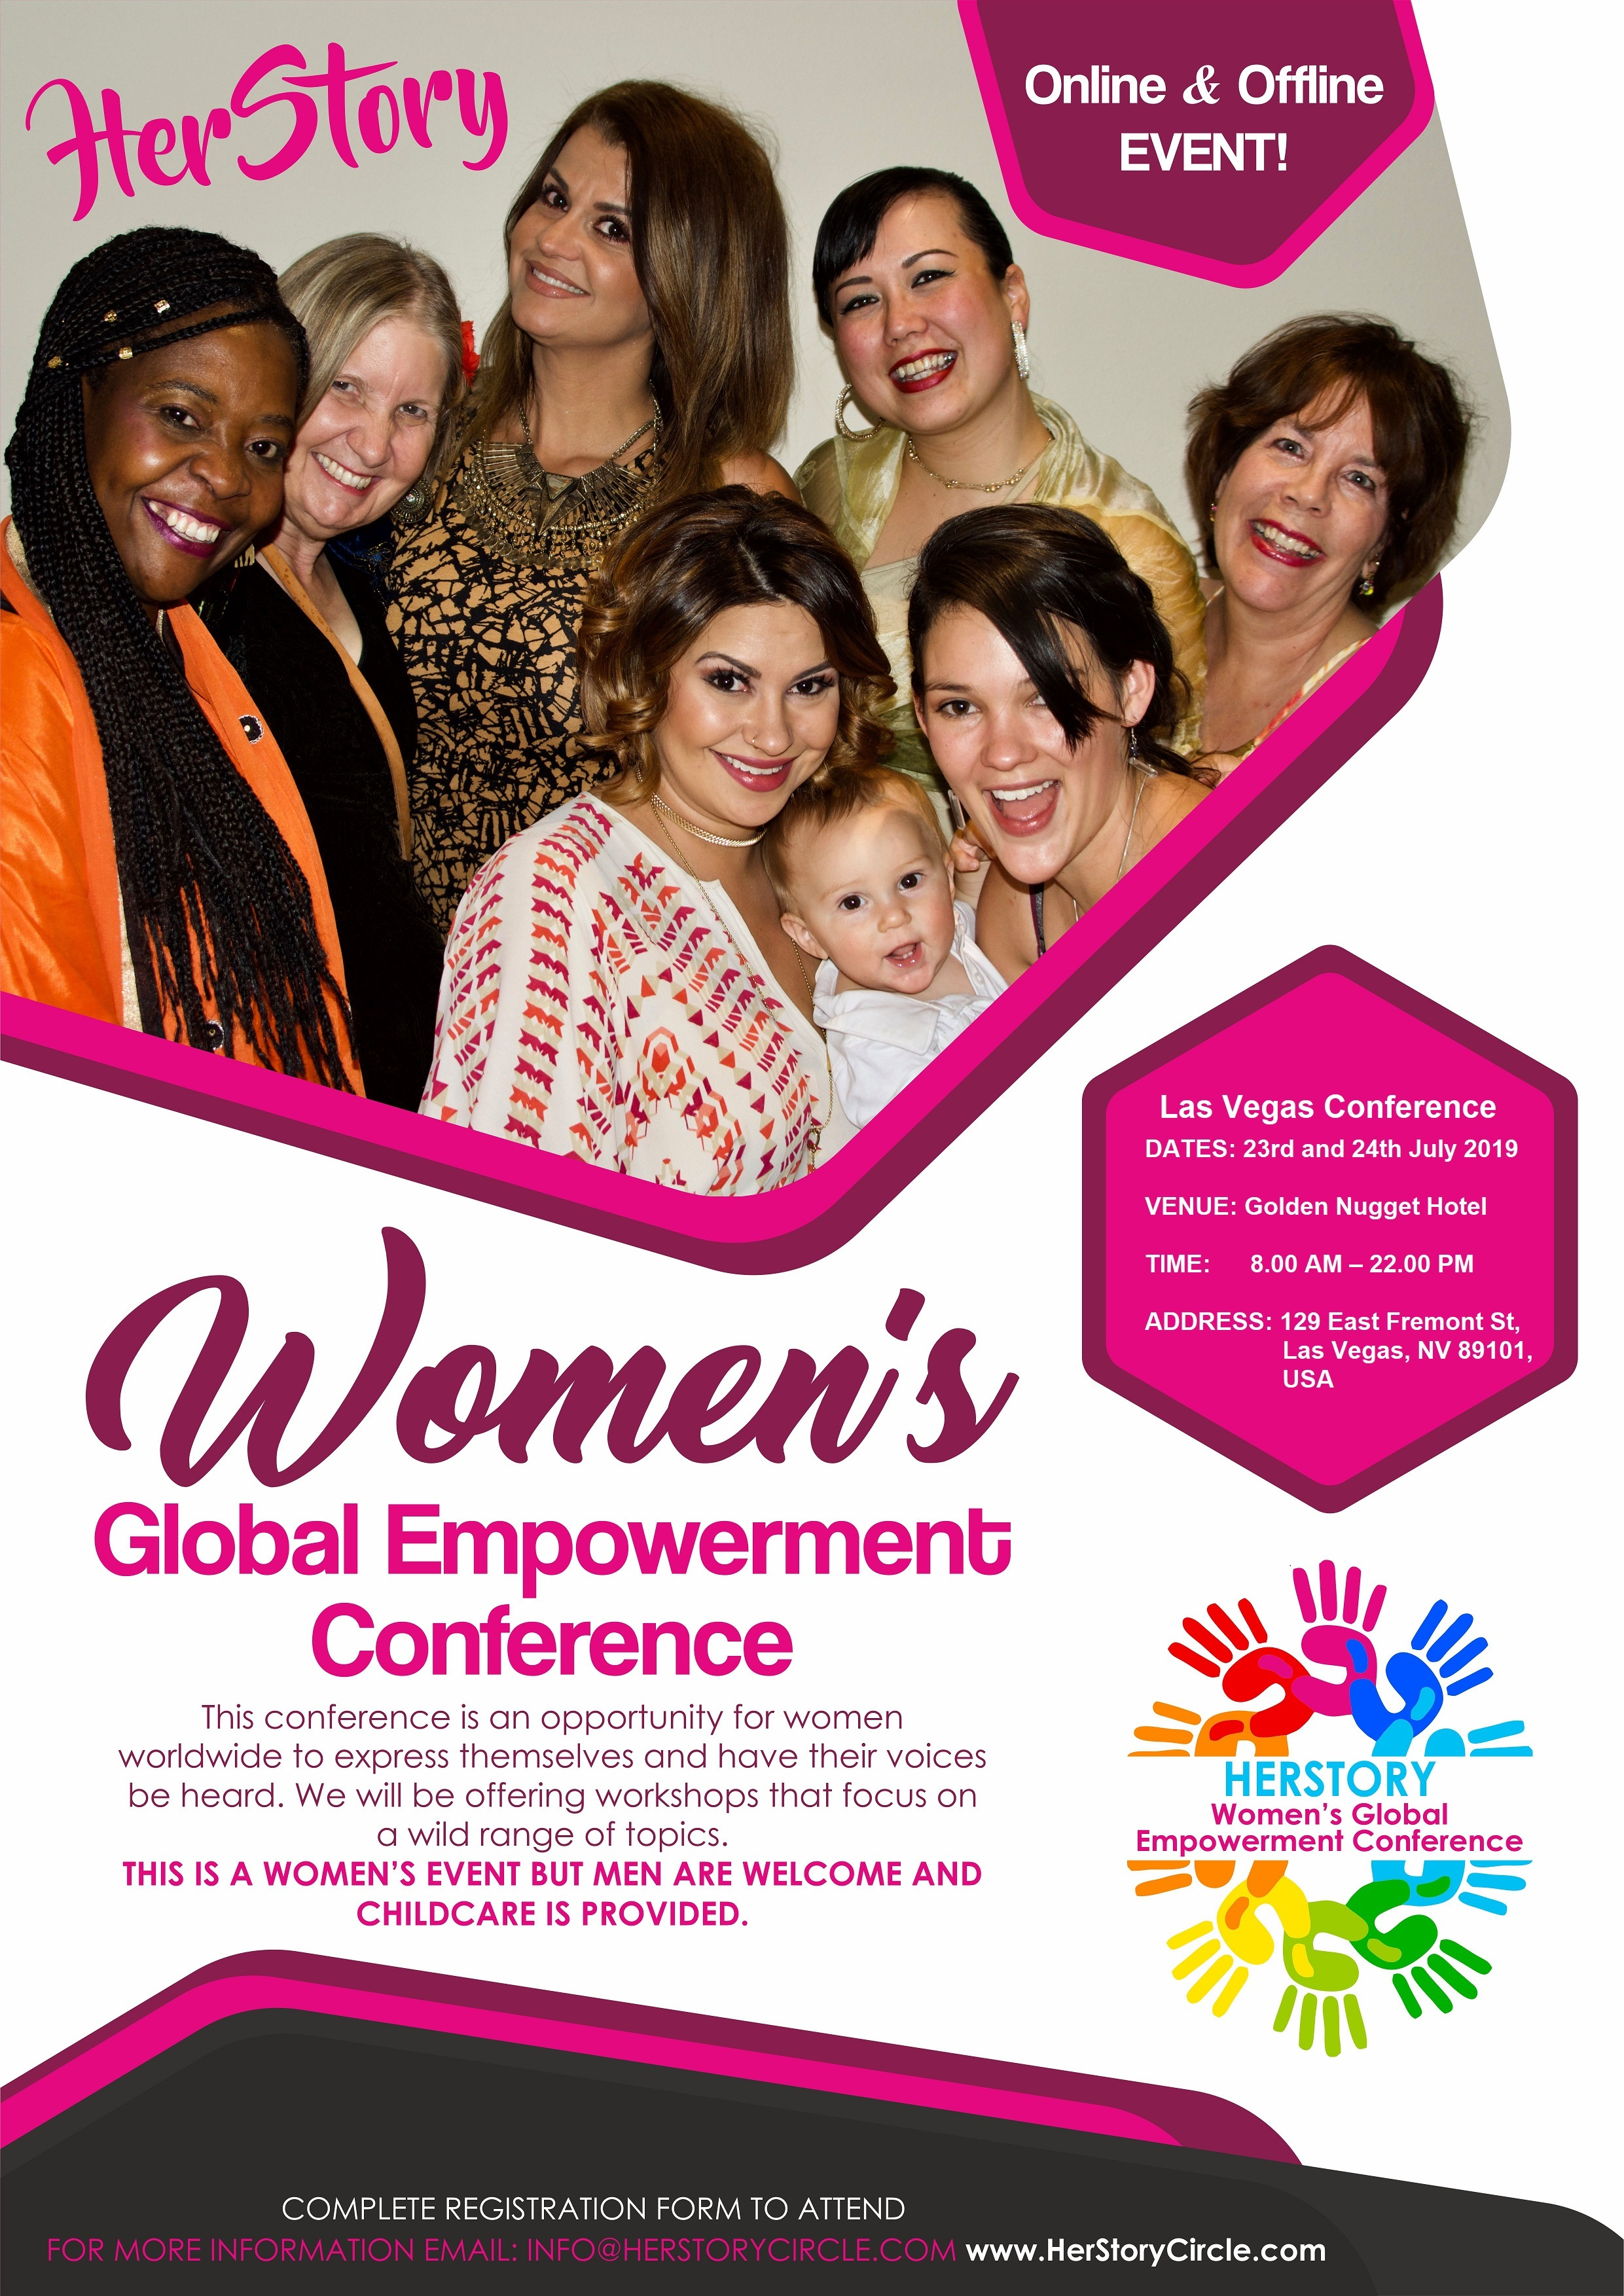 Herstory Women's Global Empowerment Inaugural Conference is Launching in Las Vegas, USA